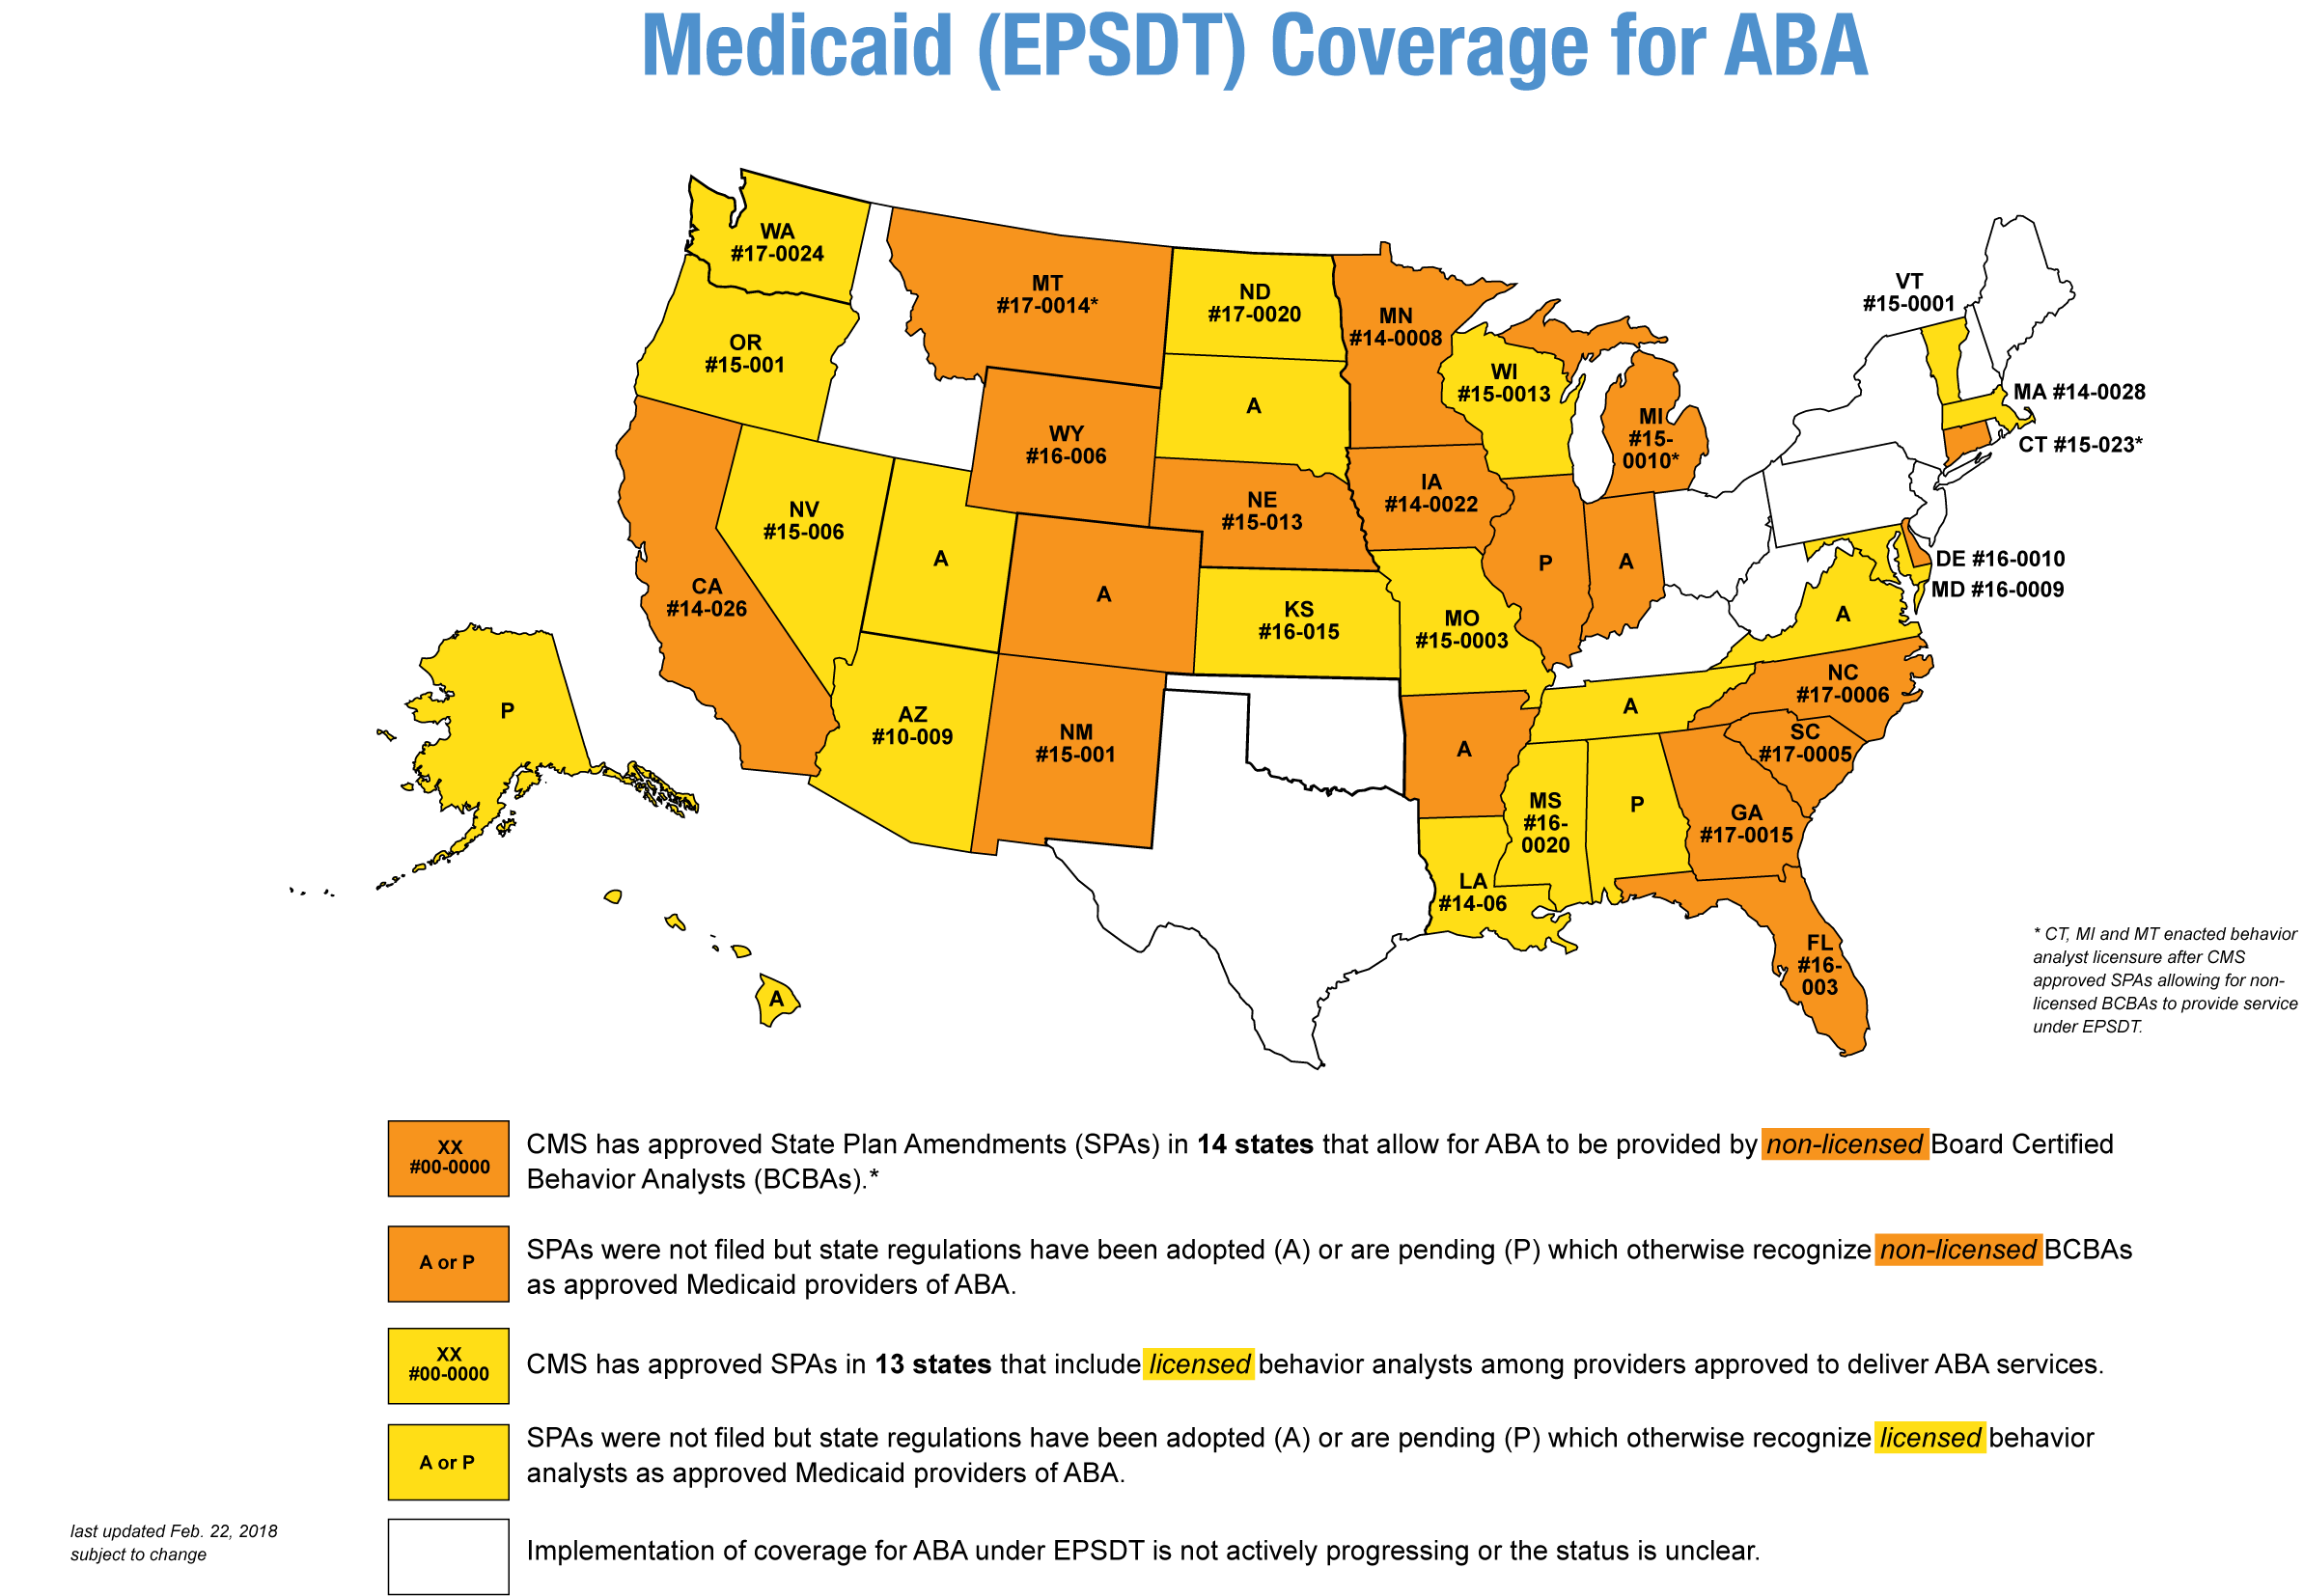 Map of the United States with states color coded and labelled according to EPSDT coverage for ABA